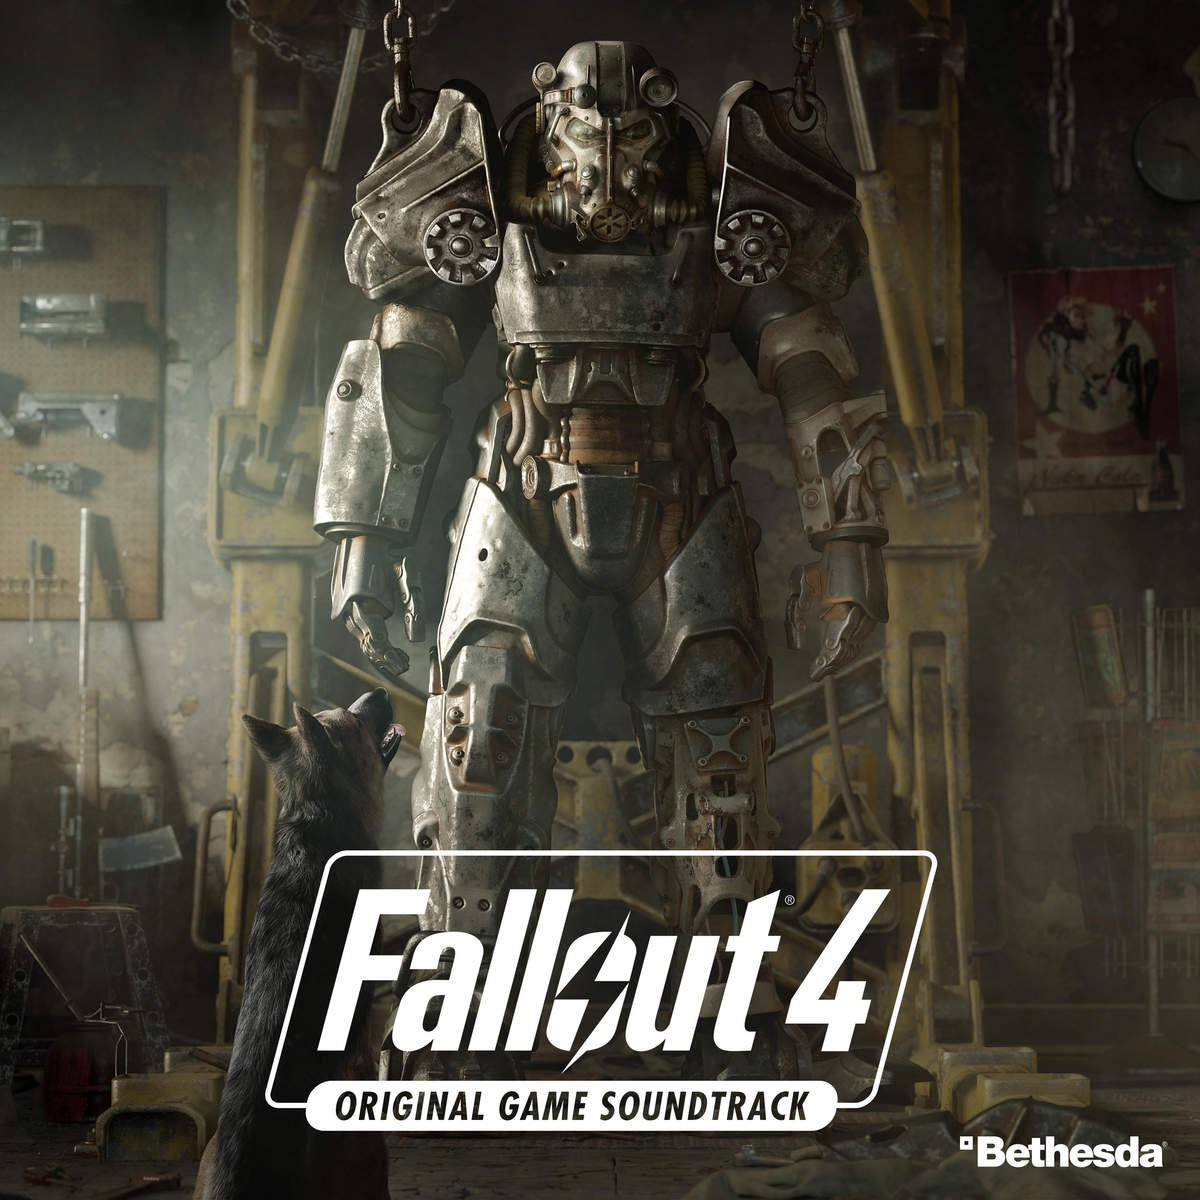 Fallout 4 Original Game Soundtrack 辐射4 游戏原声集